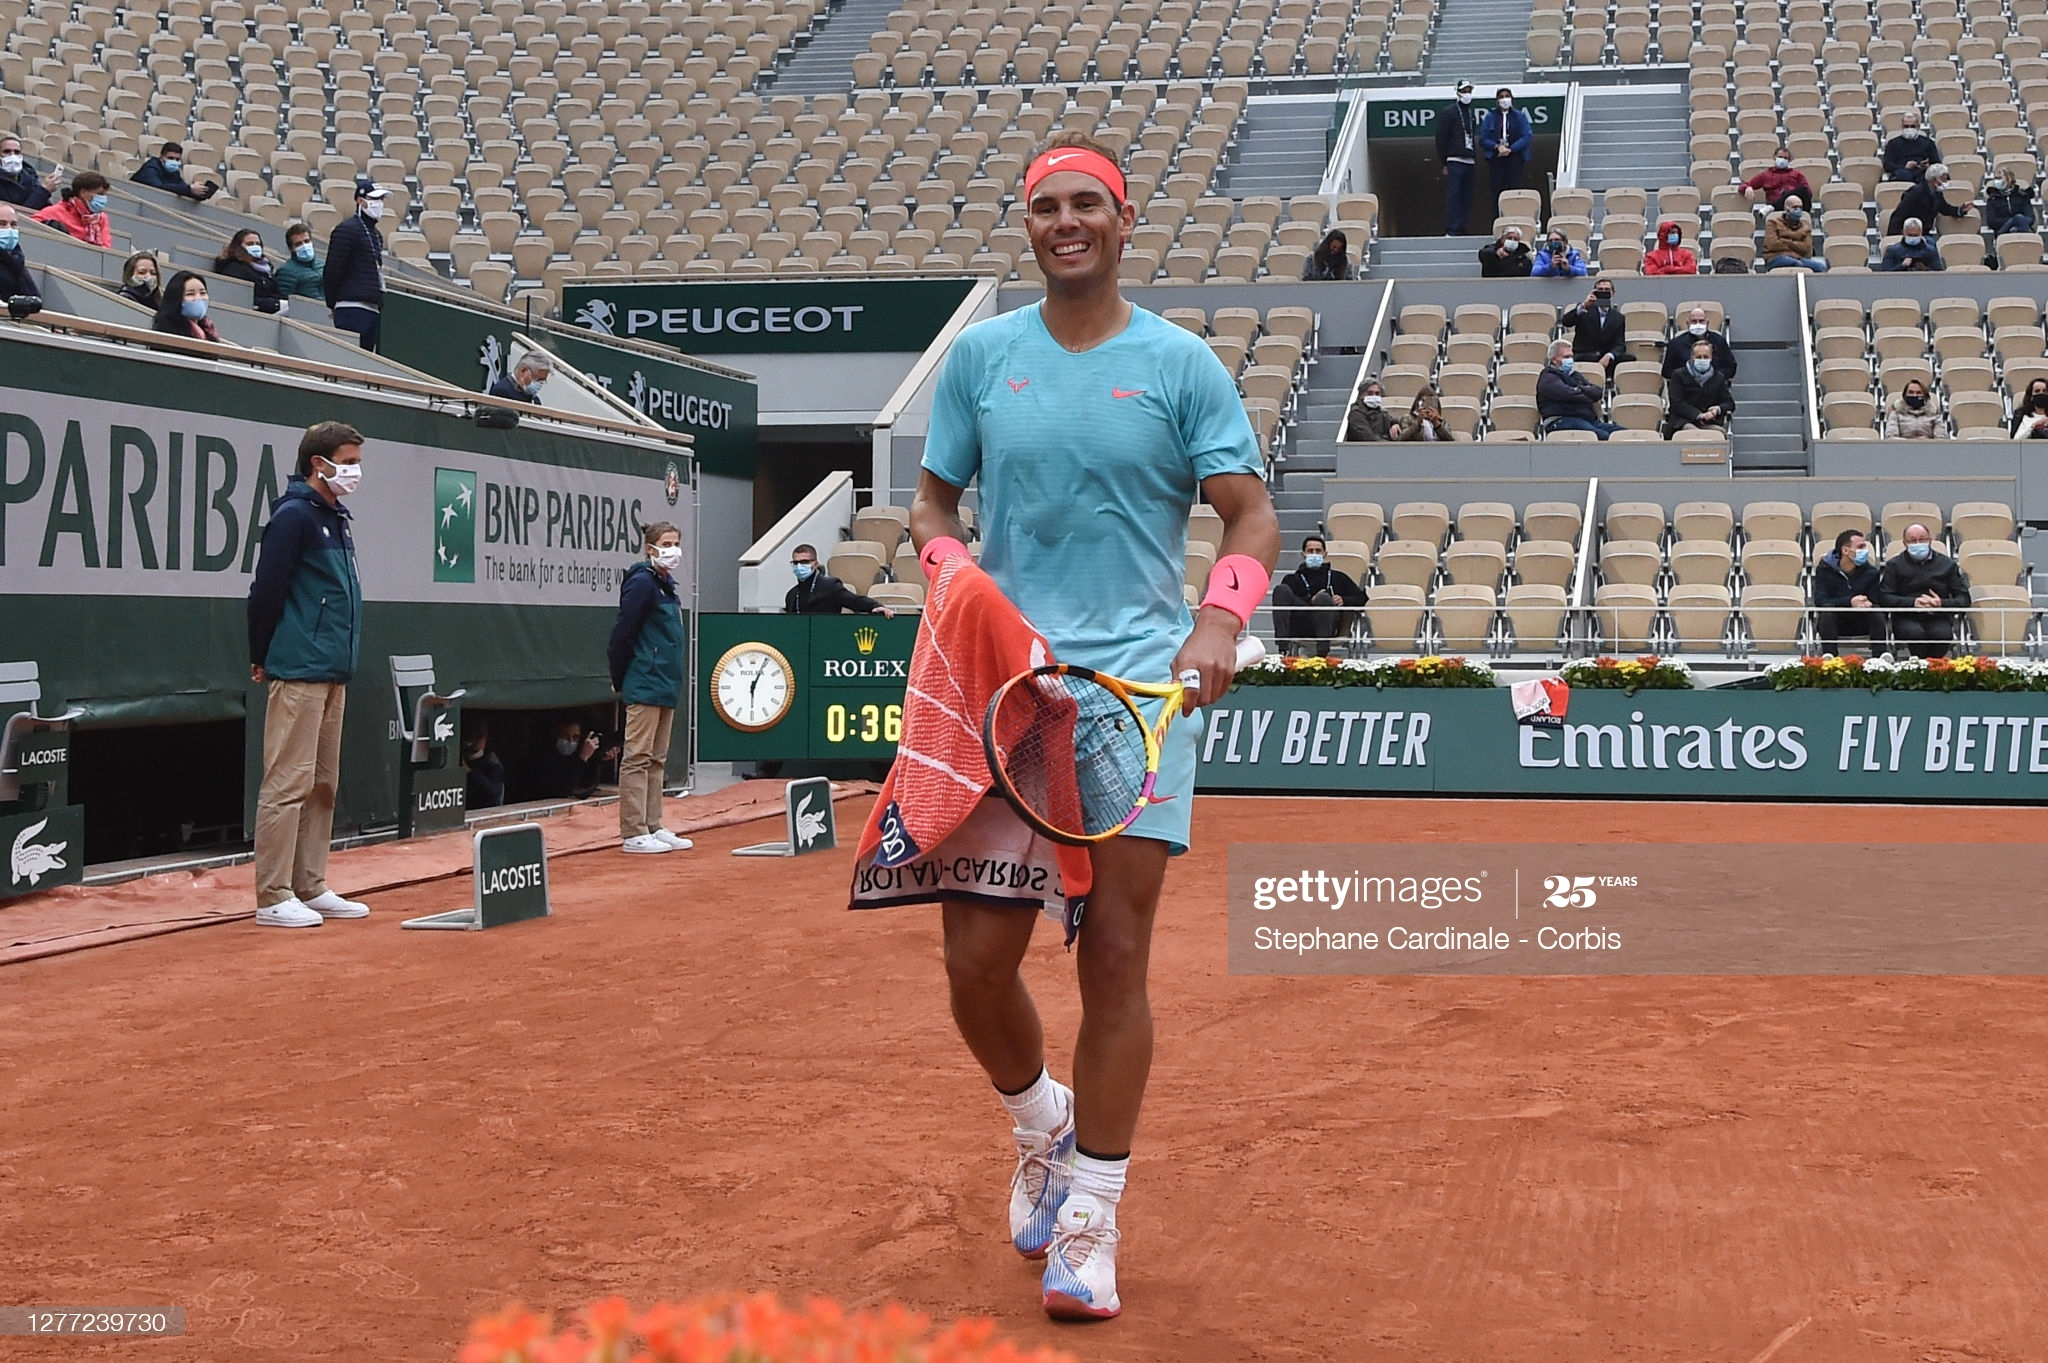 nadal day two fewnch open